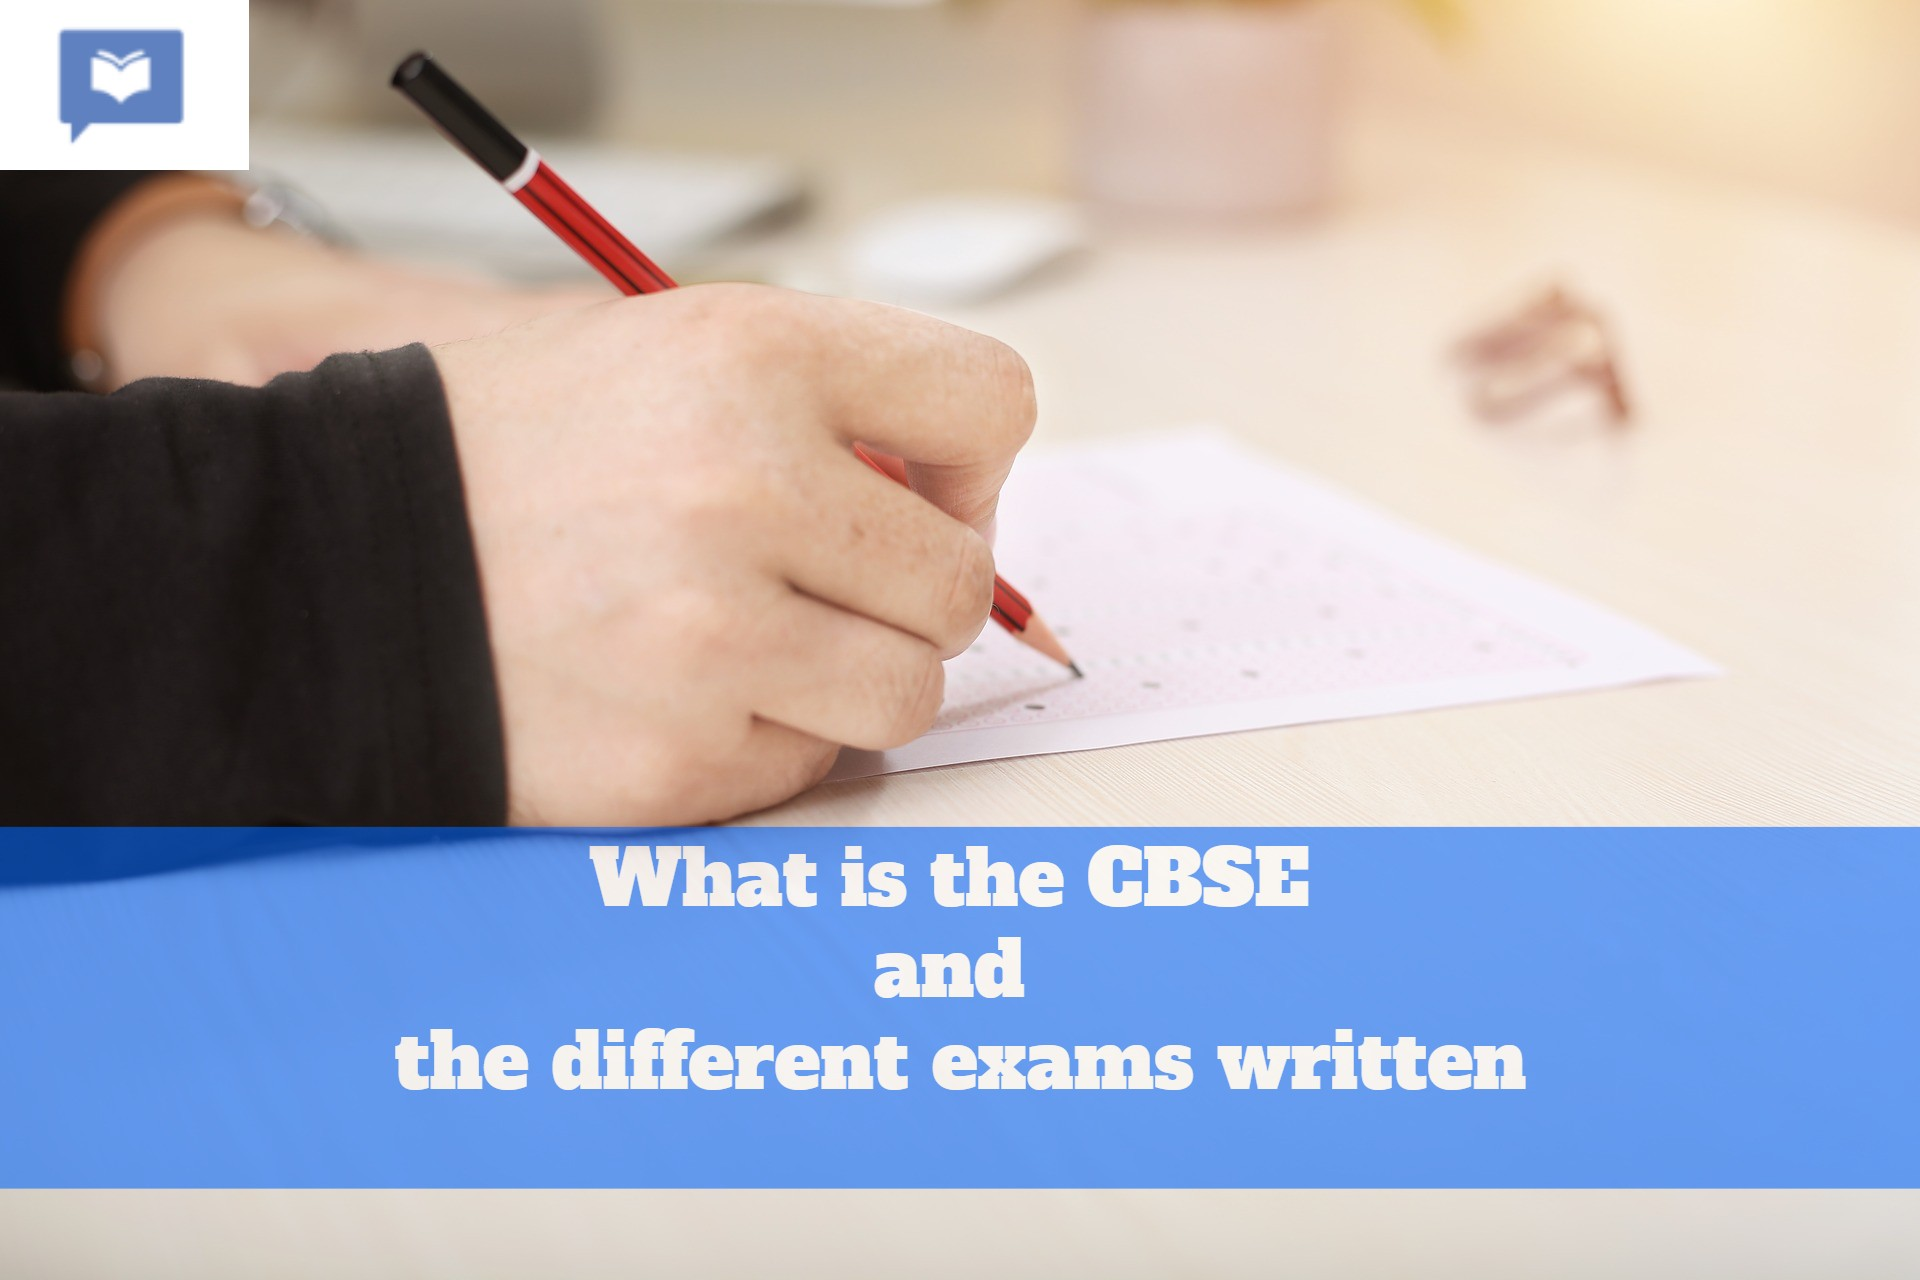 What is the CBSE and the different exams written